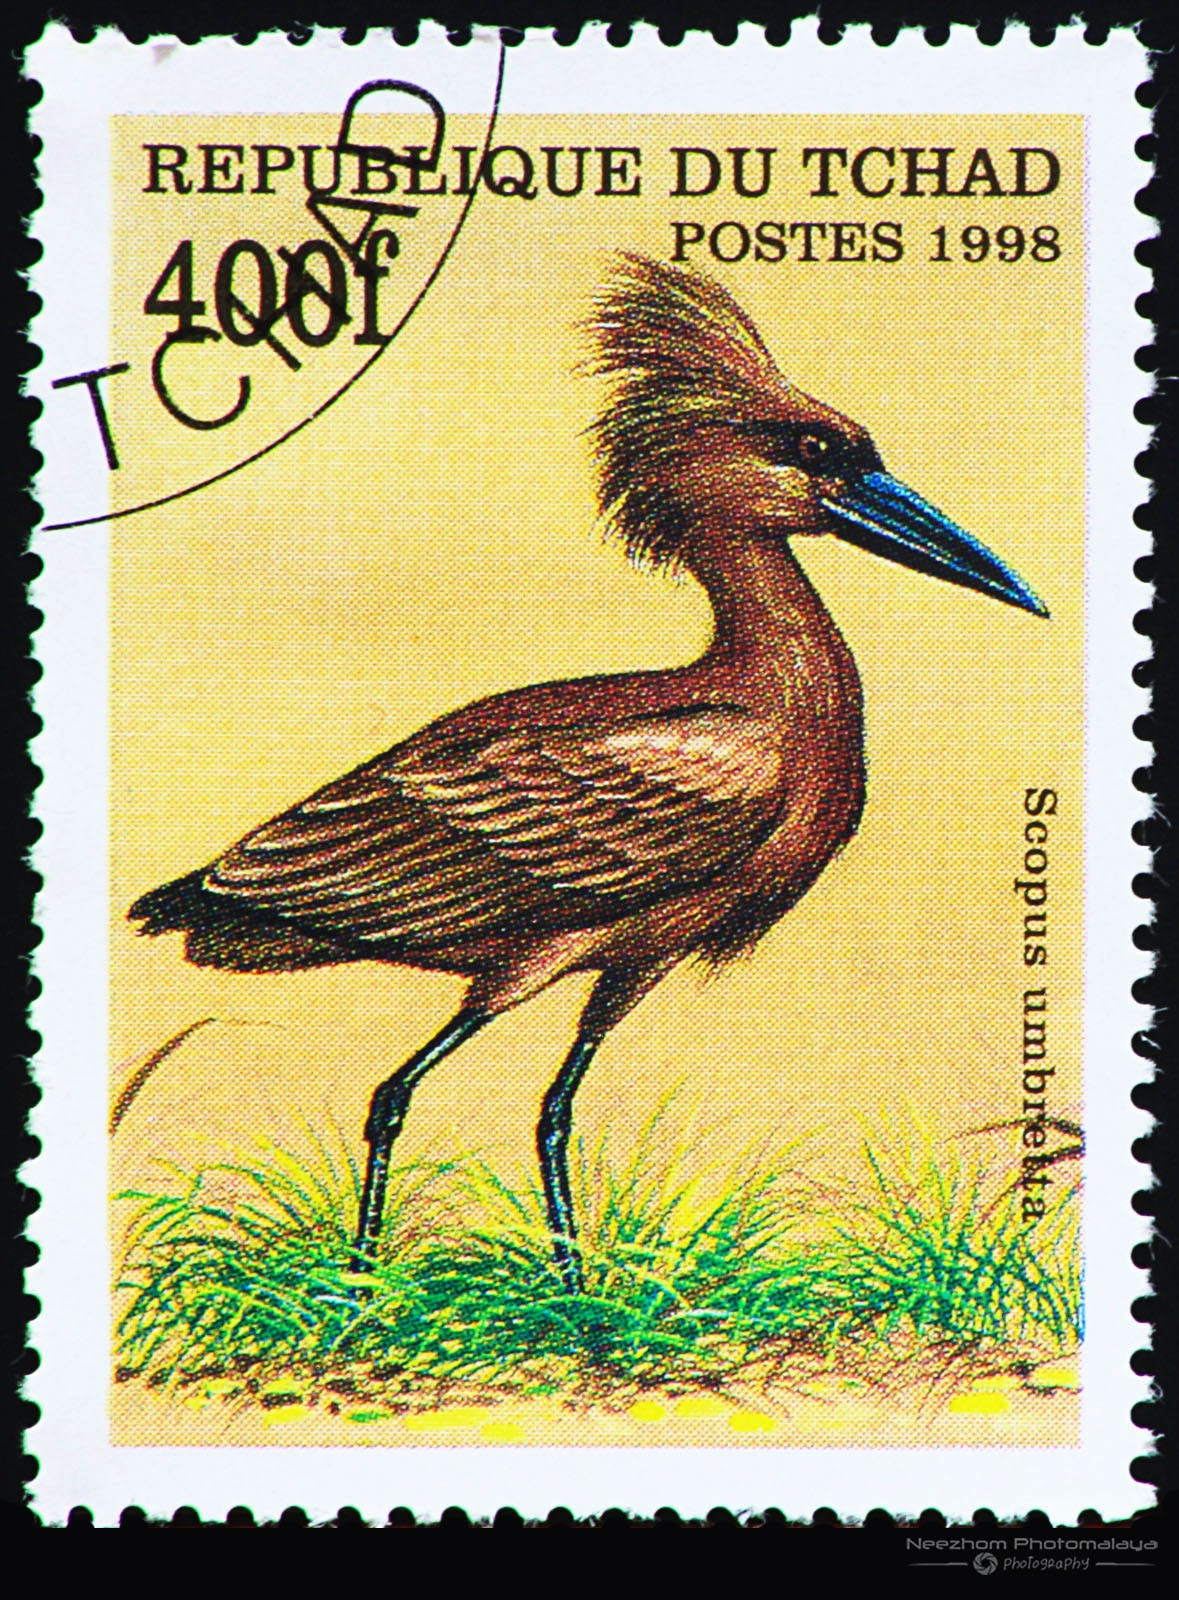 Chad 1998 Birds stamp - Hamerkop (Scopus umbretta) 400 f